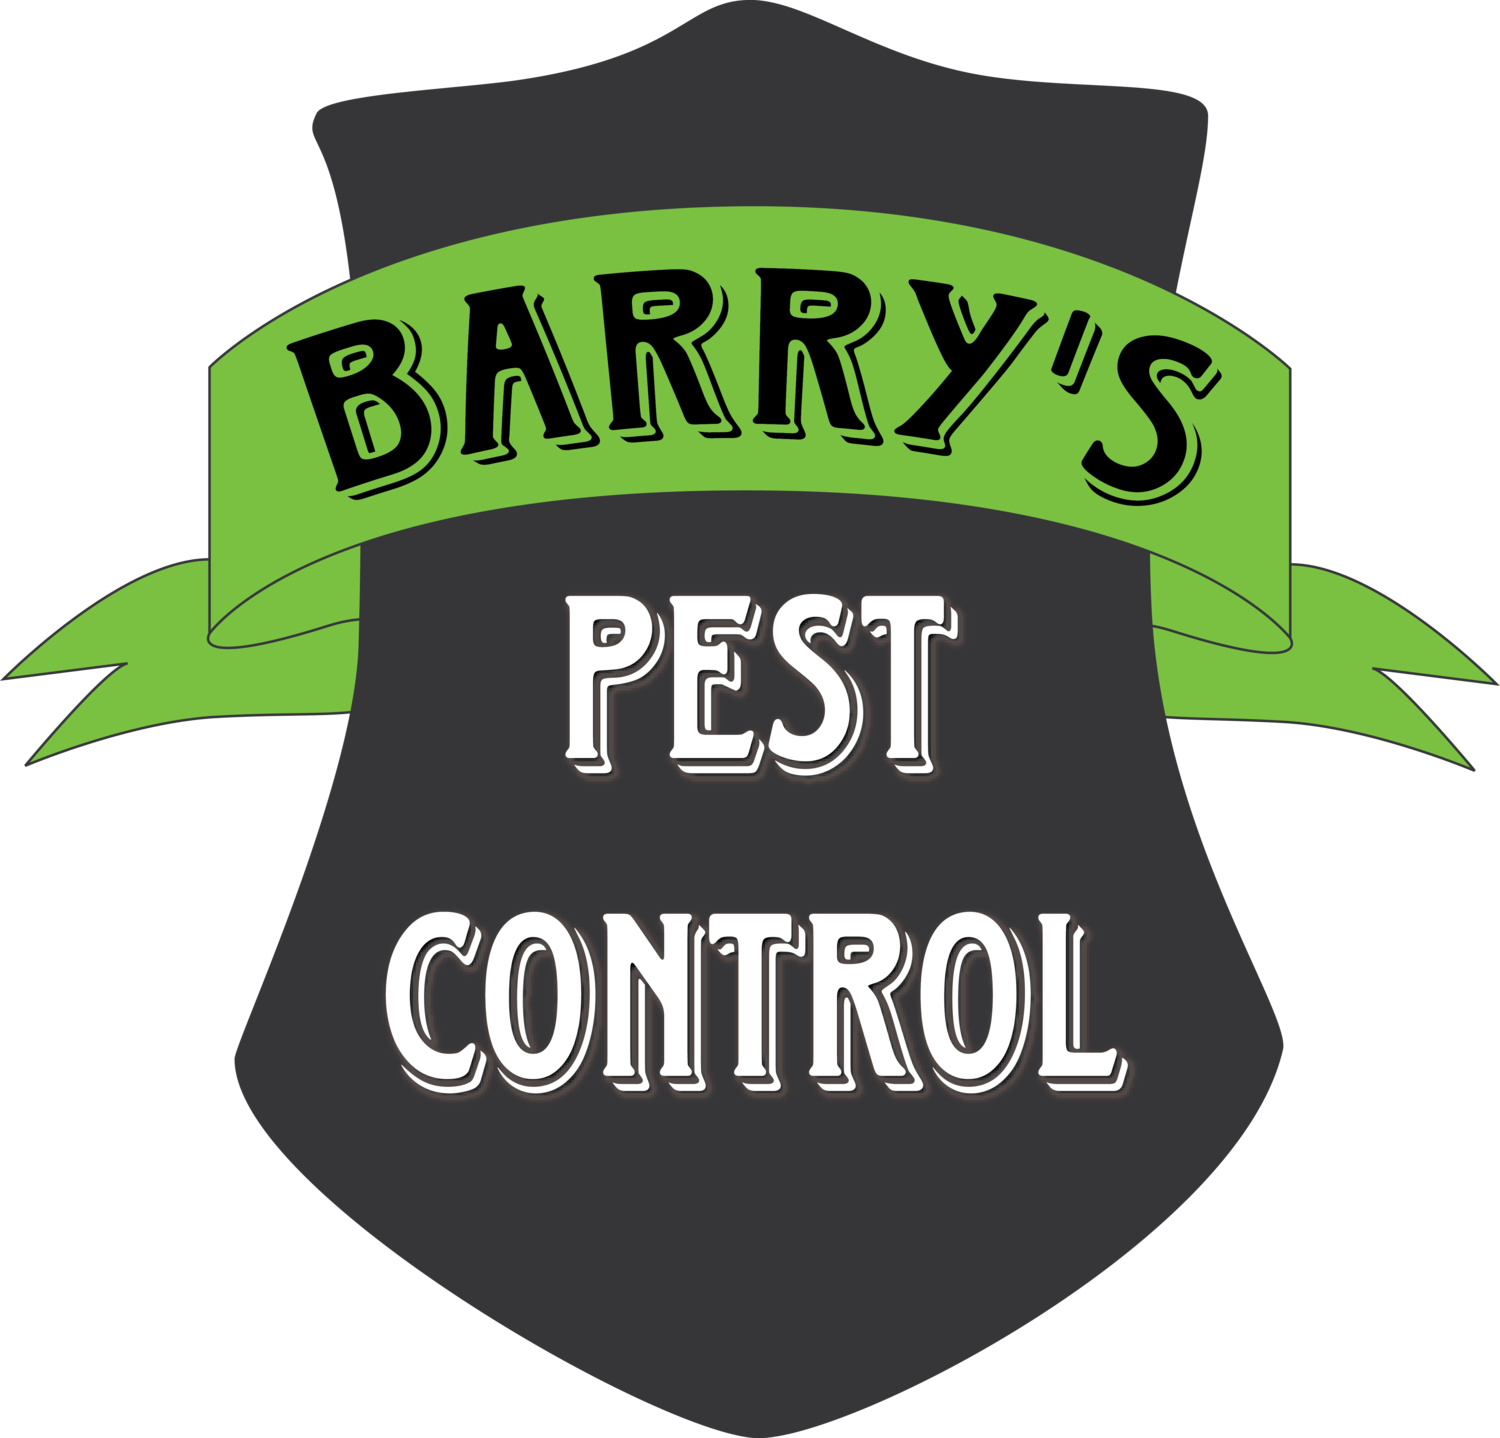 Barry's Pest Control